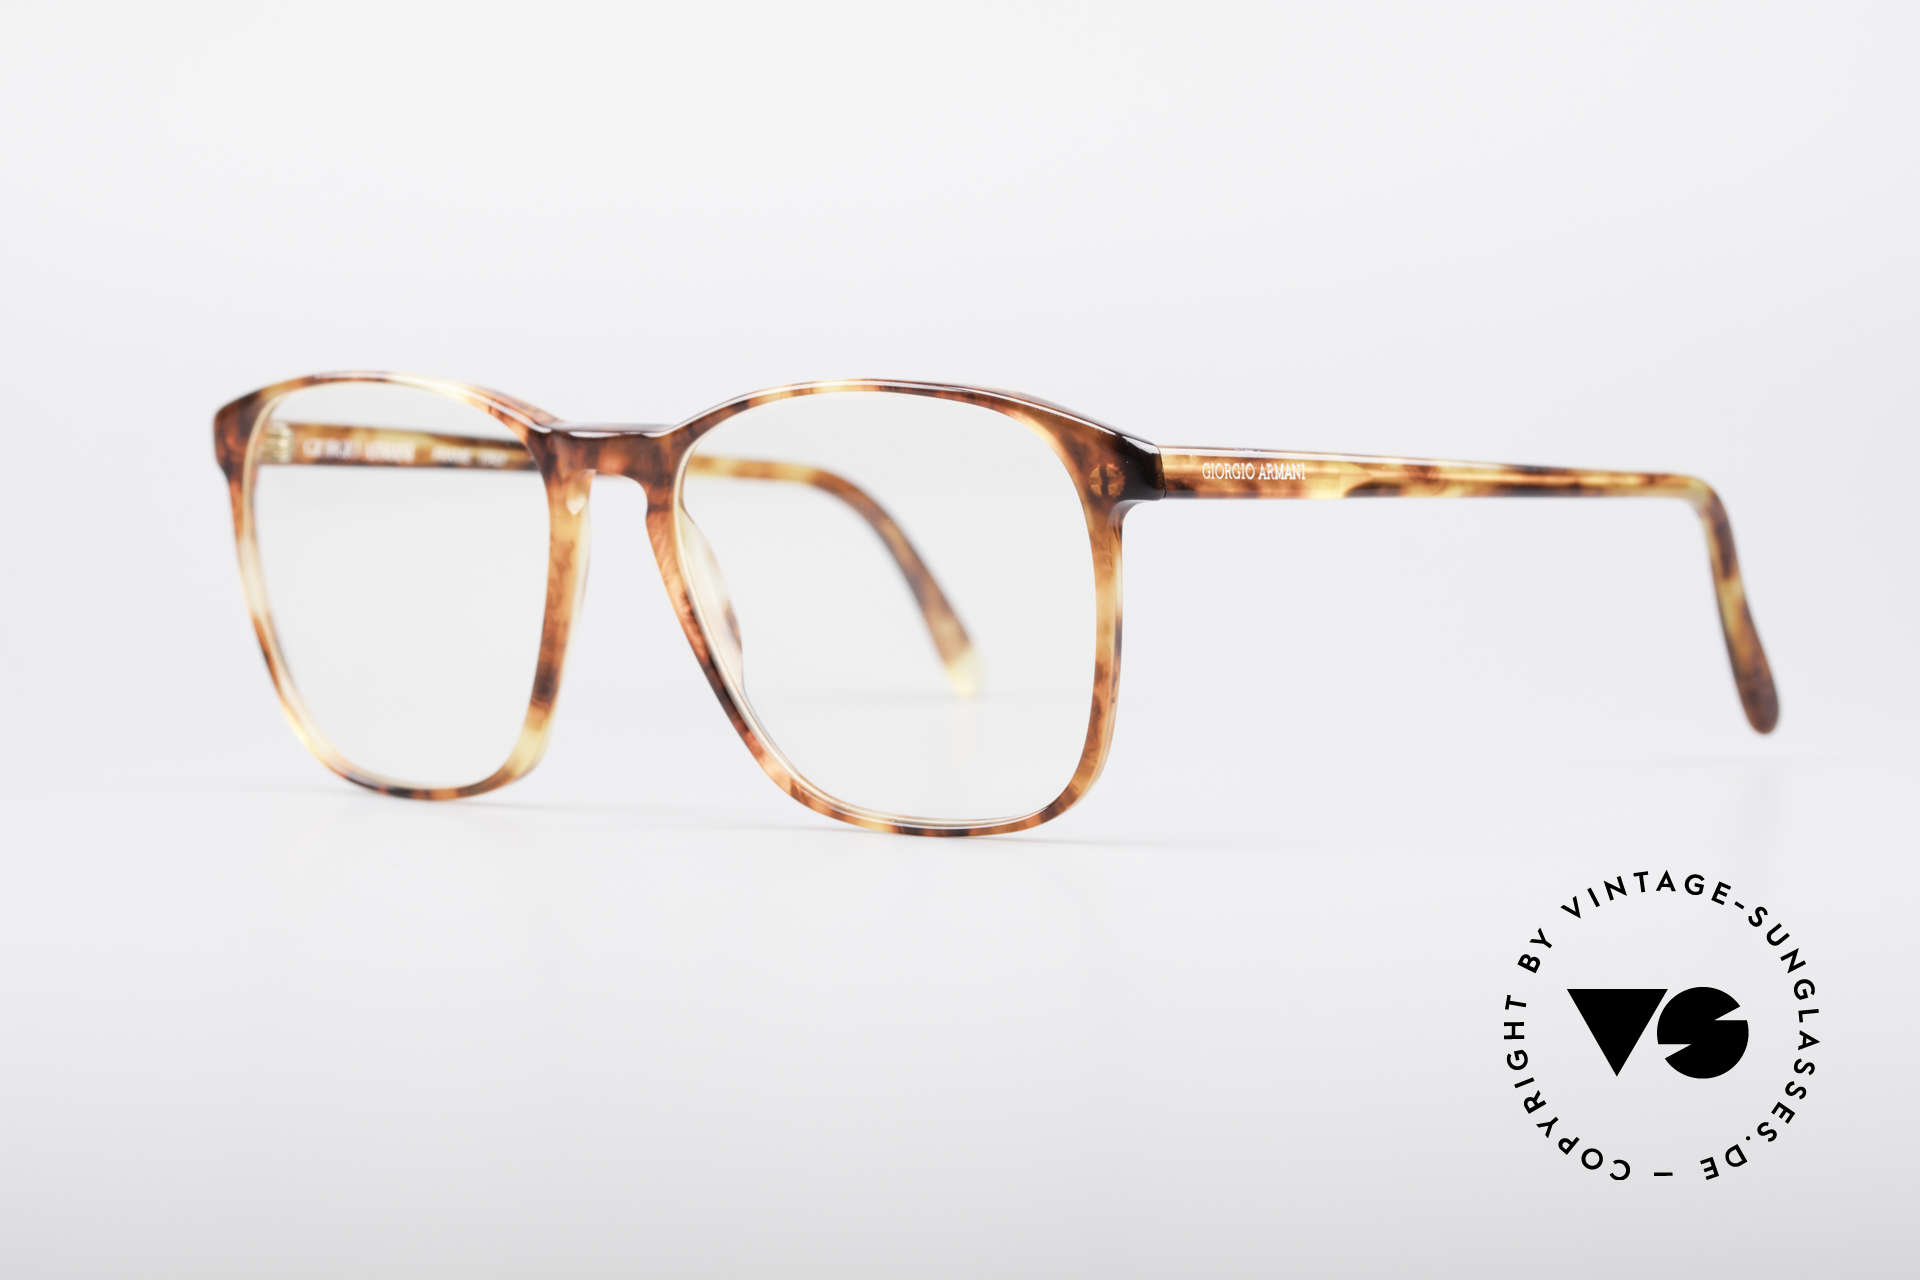 Giorgio Armani 328 True Vintage Glasses, great combination of quality, design and comfort, Made for Men